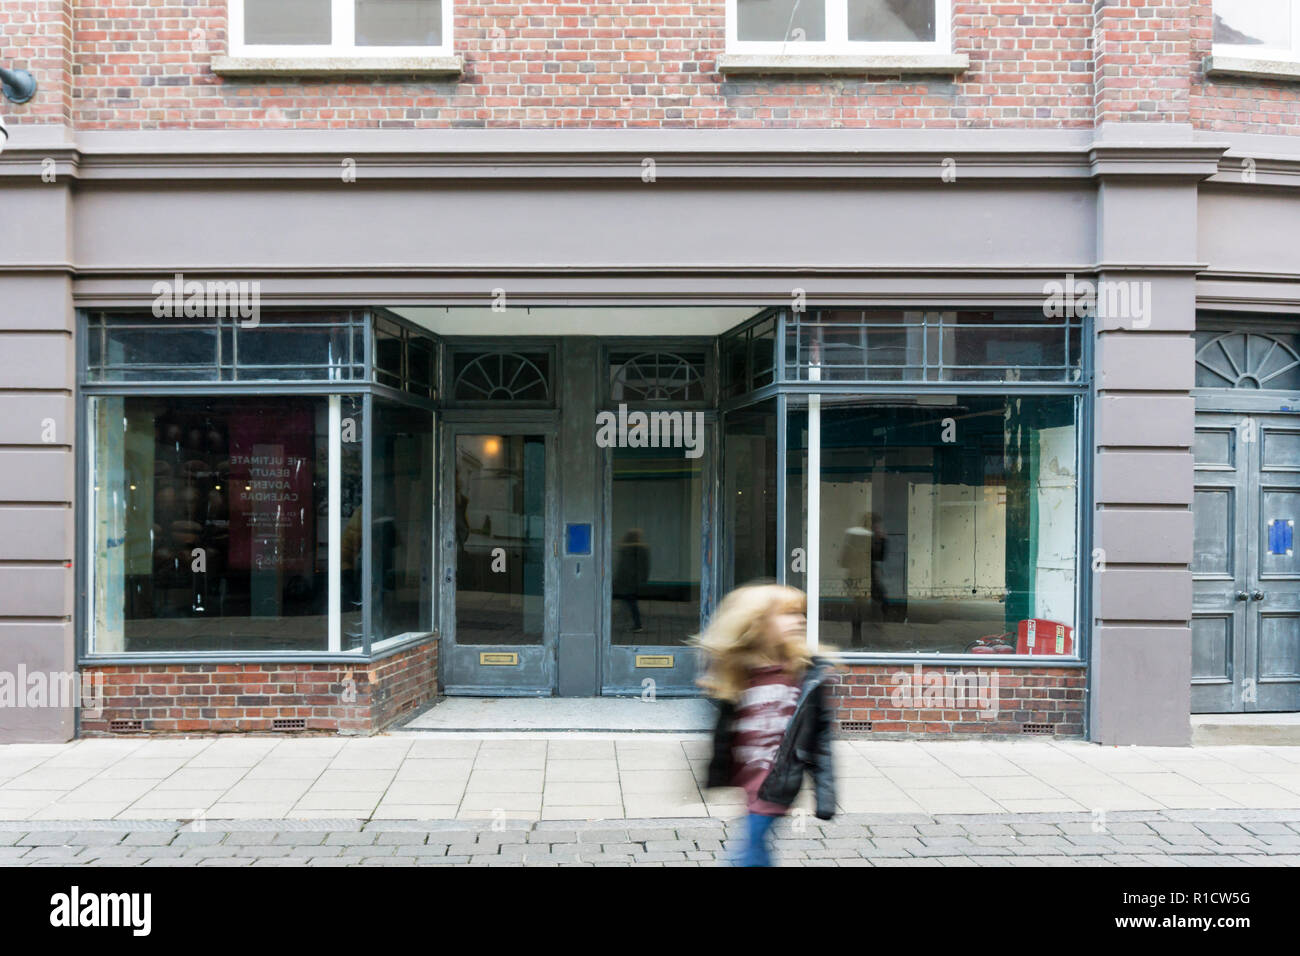 Girl, motion blurred, in front of an empty shop in a UK High Street. - Stock Image